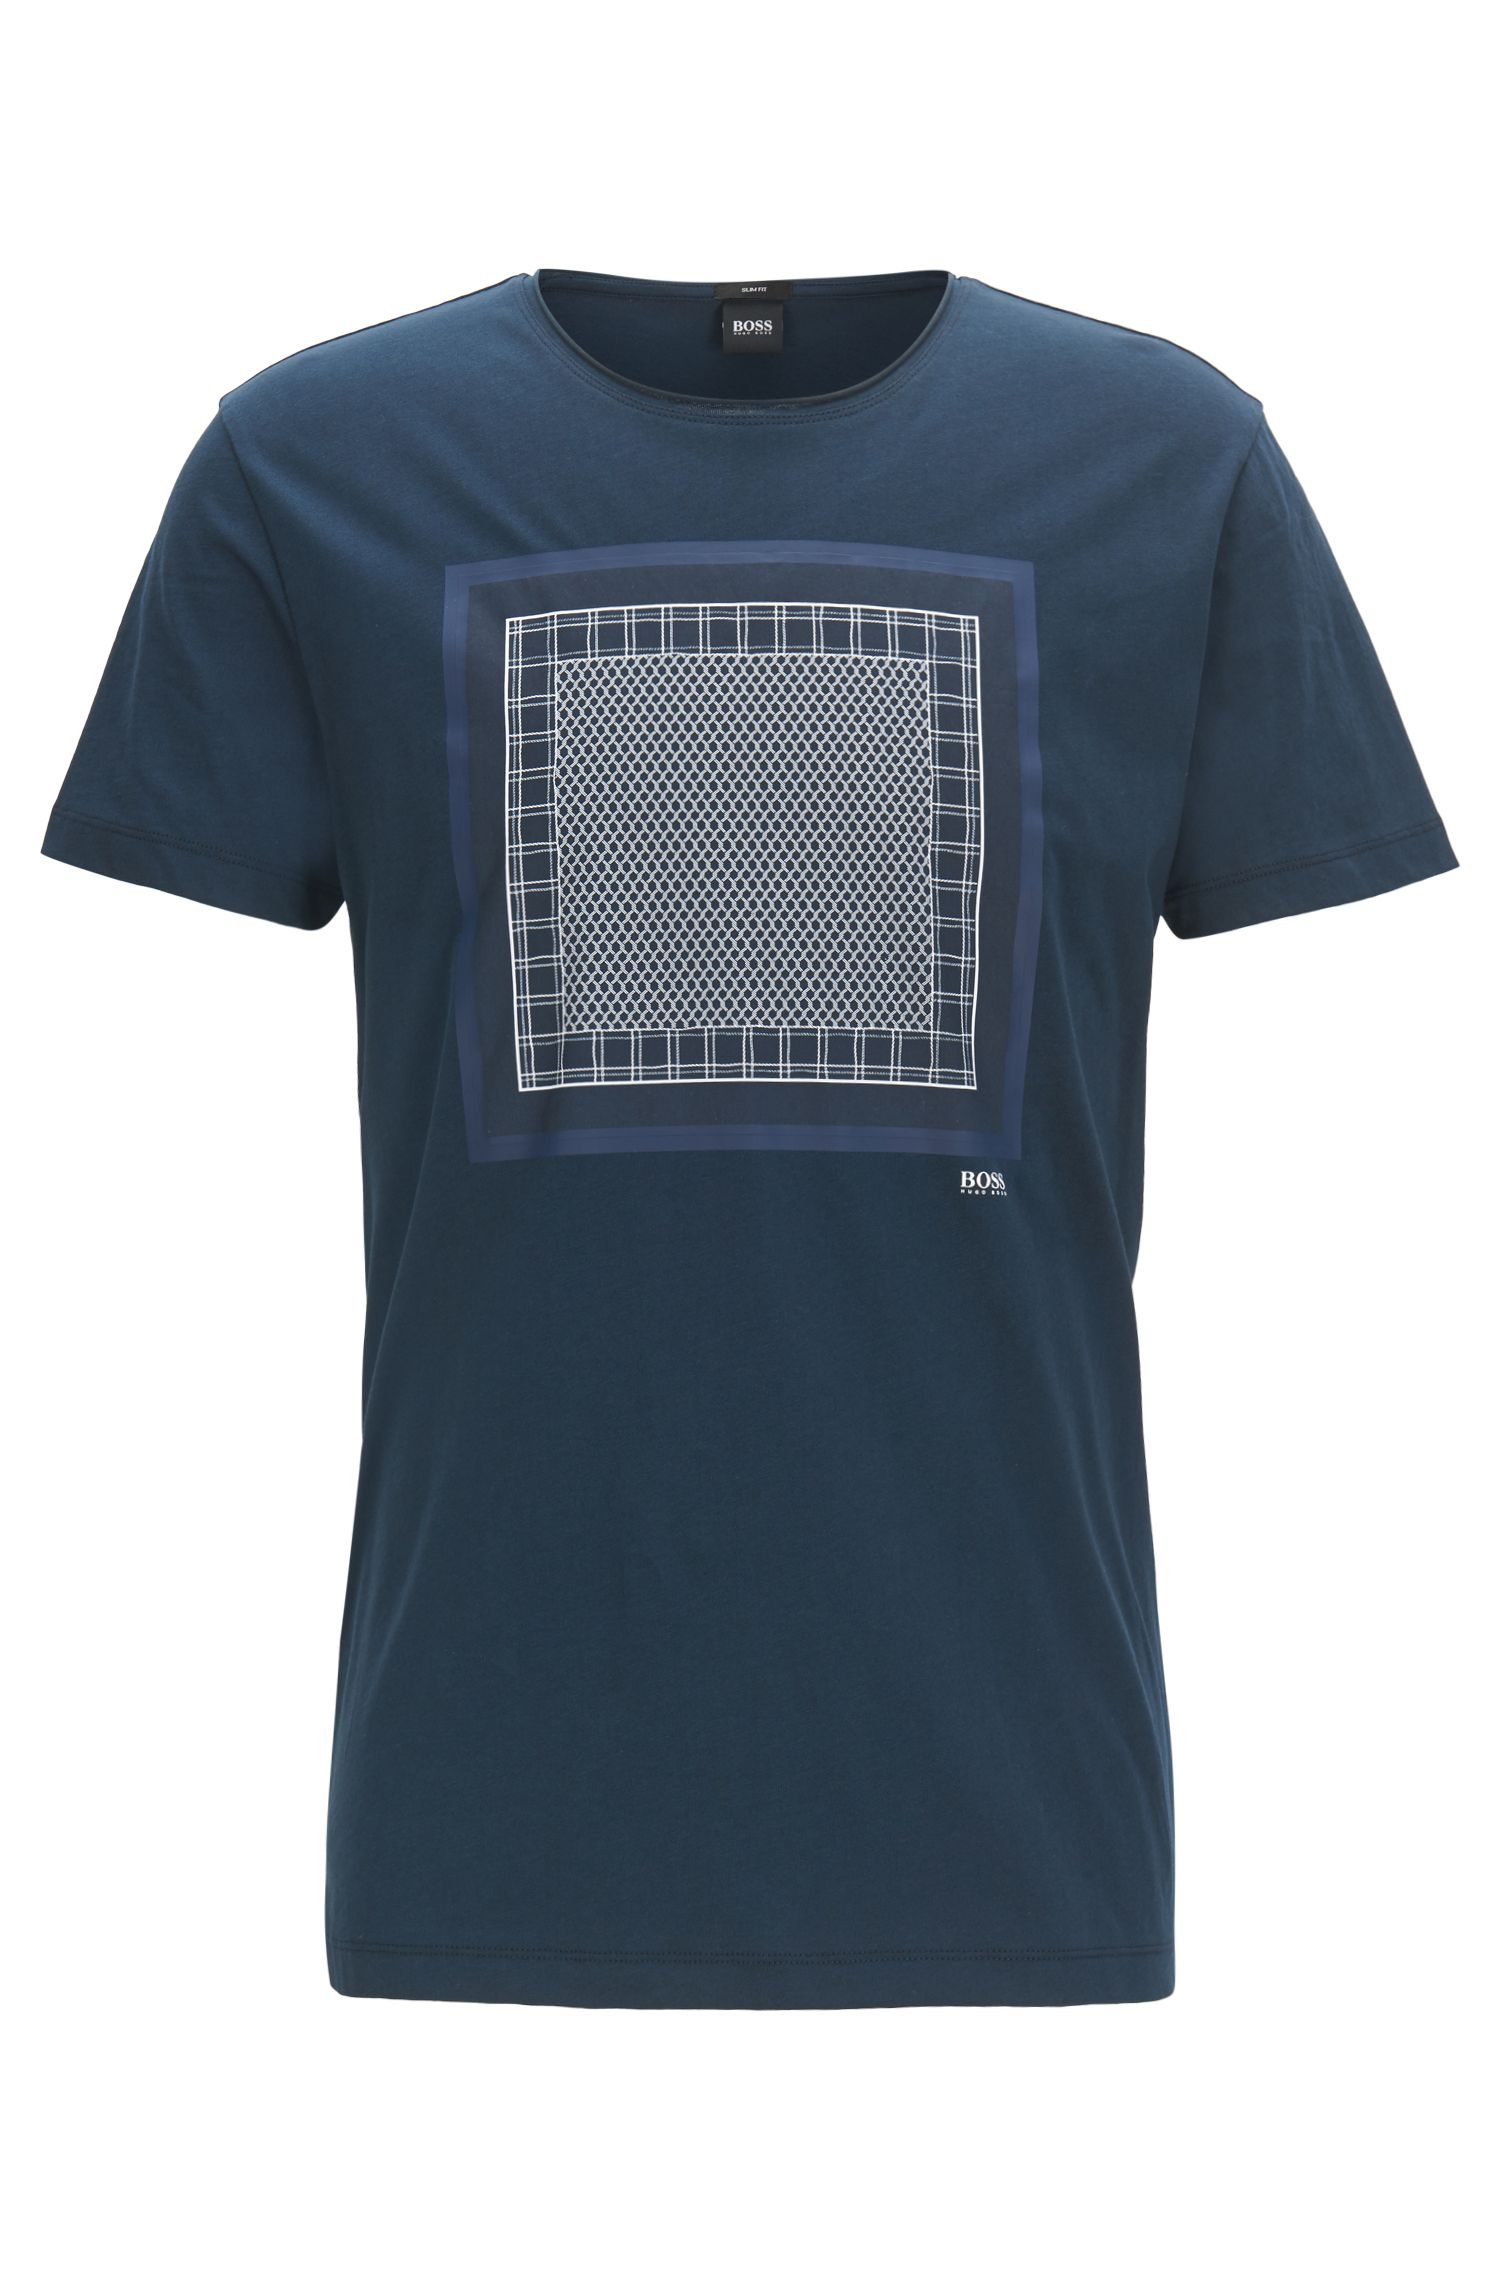 Mixed-print T-shirt in washed cotton jersey